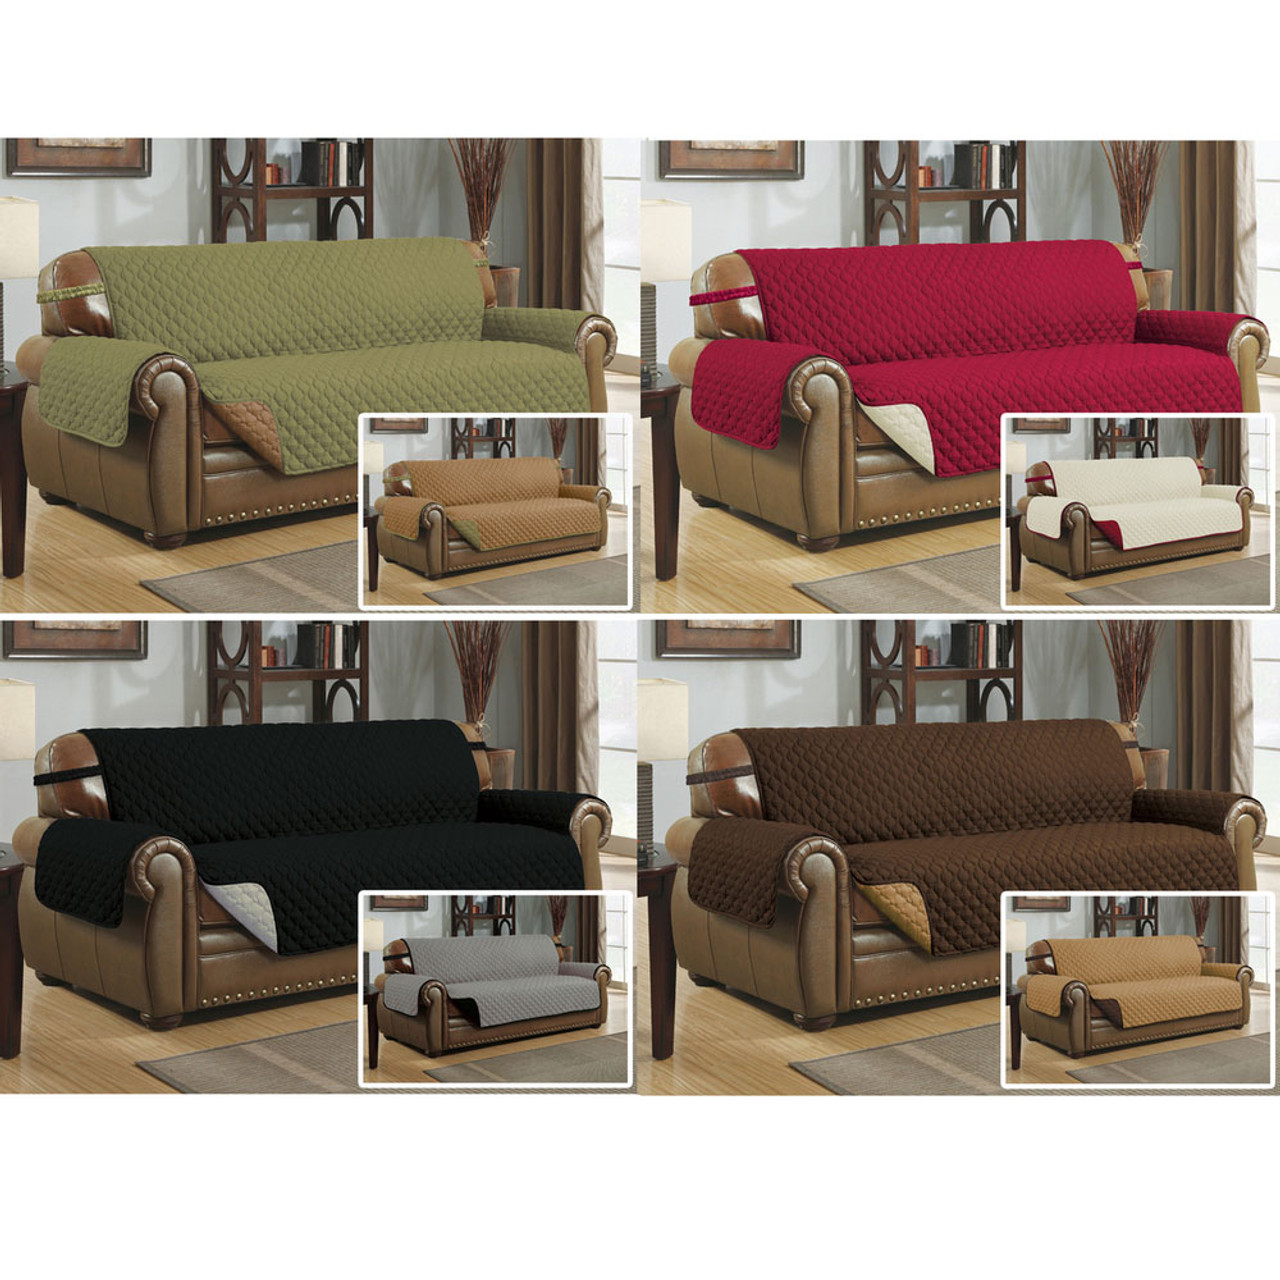 reversible quilted microfiber pet dog couch sofa furniture protector rh linenstore com sofa chair protectors sofa couch protector